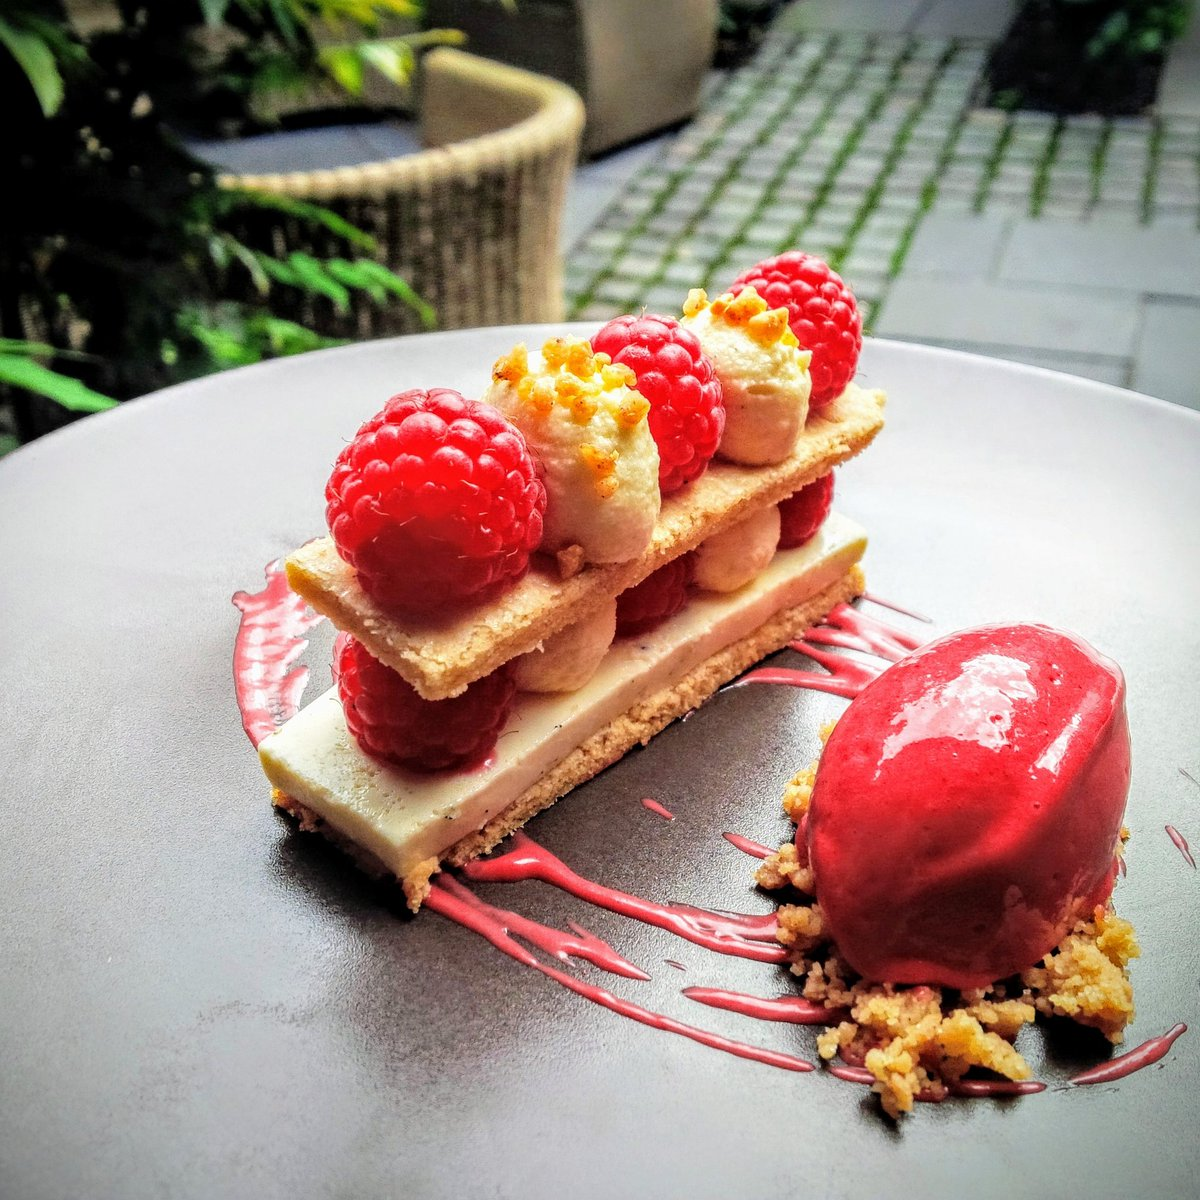 As promised this week we ll only post #dessert photos from the last few years... This one was a Raspberry & White Chocolate! . . #lovindublin #food #lovedublin #restaurant #donnybrook #dublin #dublindining #desserts #dessertpostweek #dessert #pastry #pastrychef #pastrylife #insta